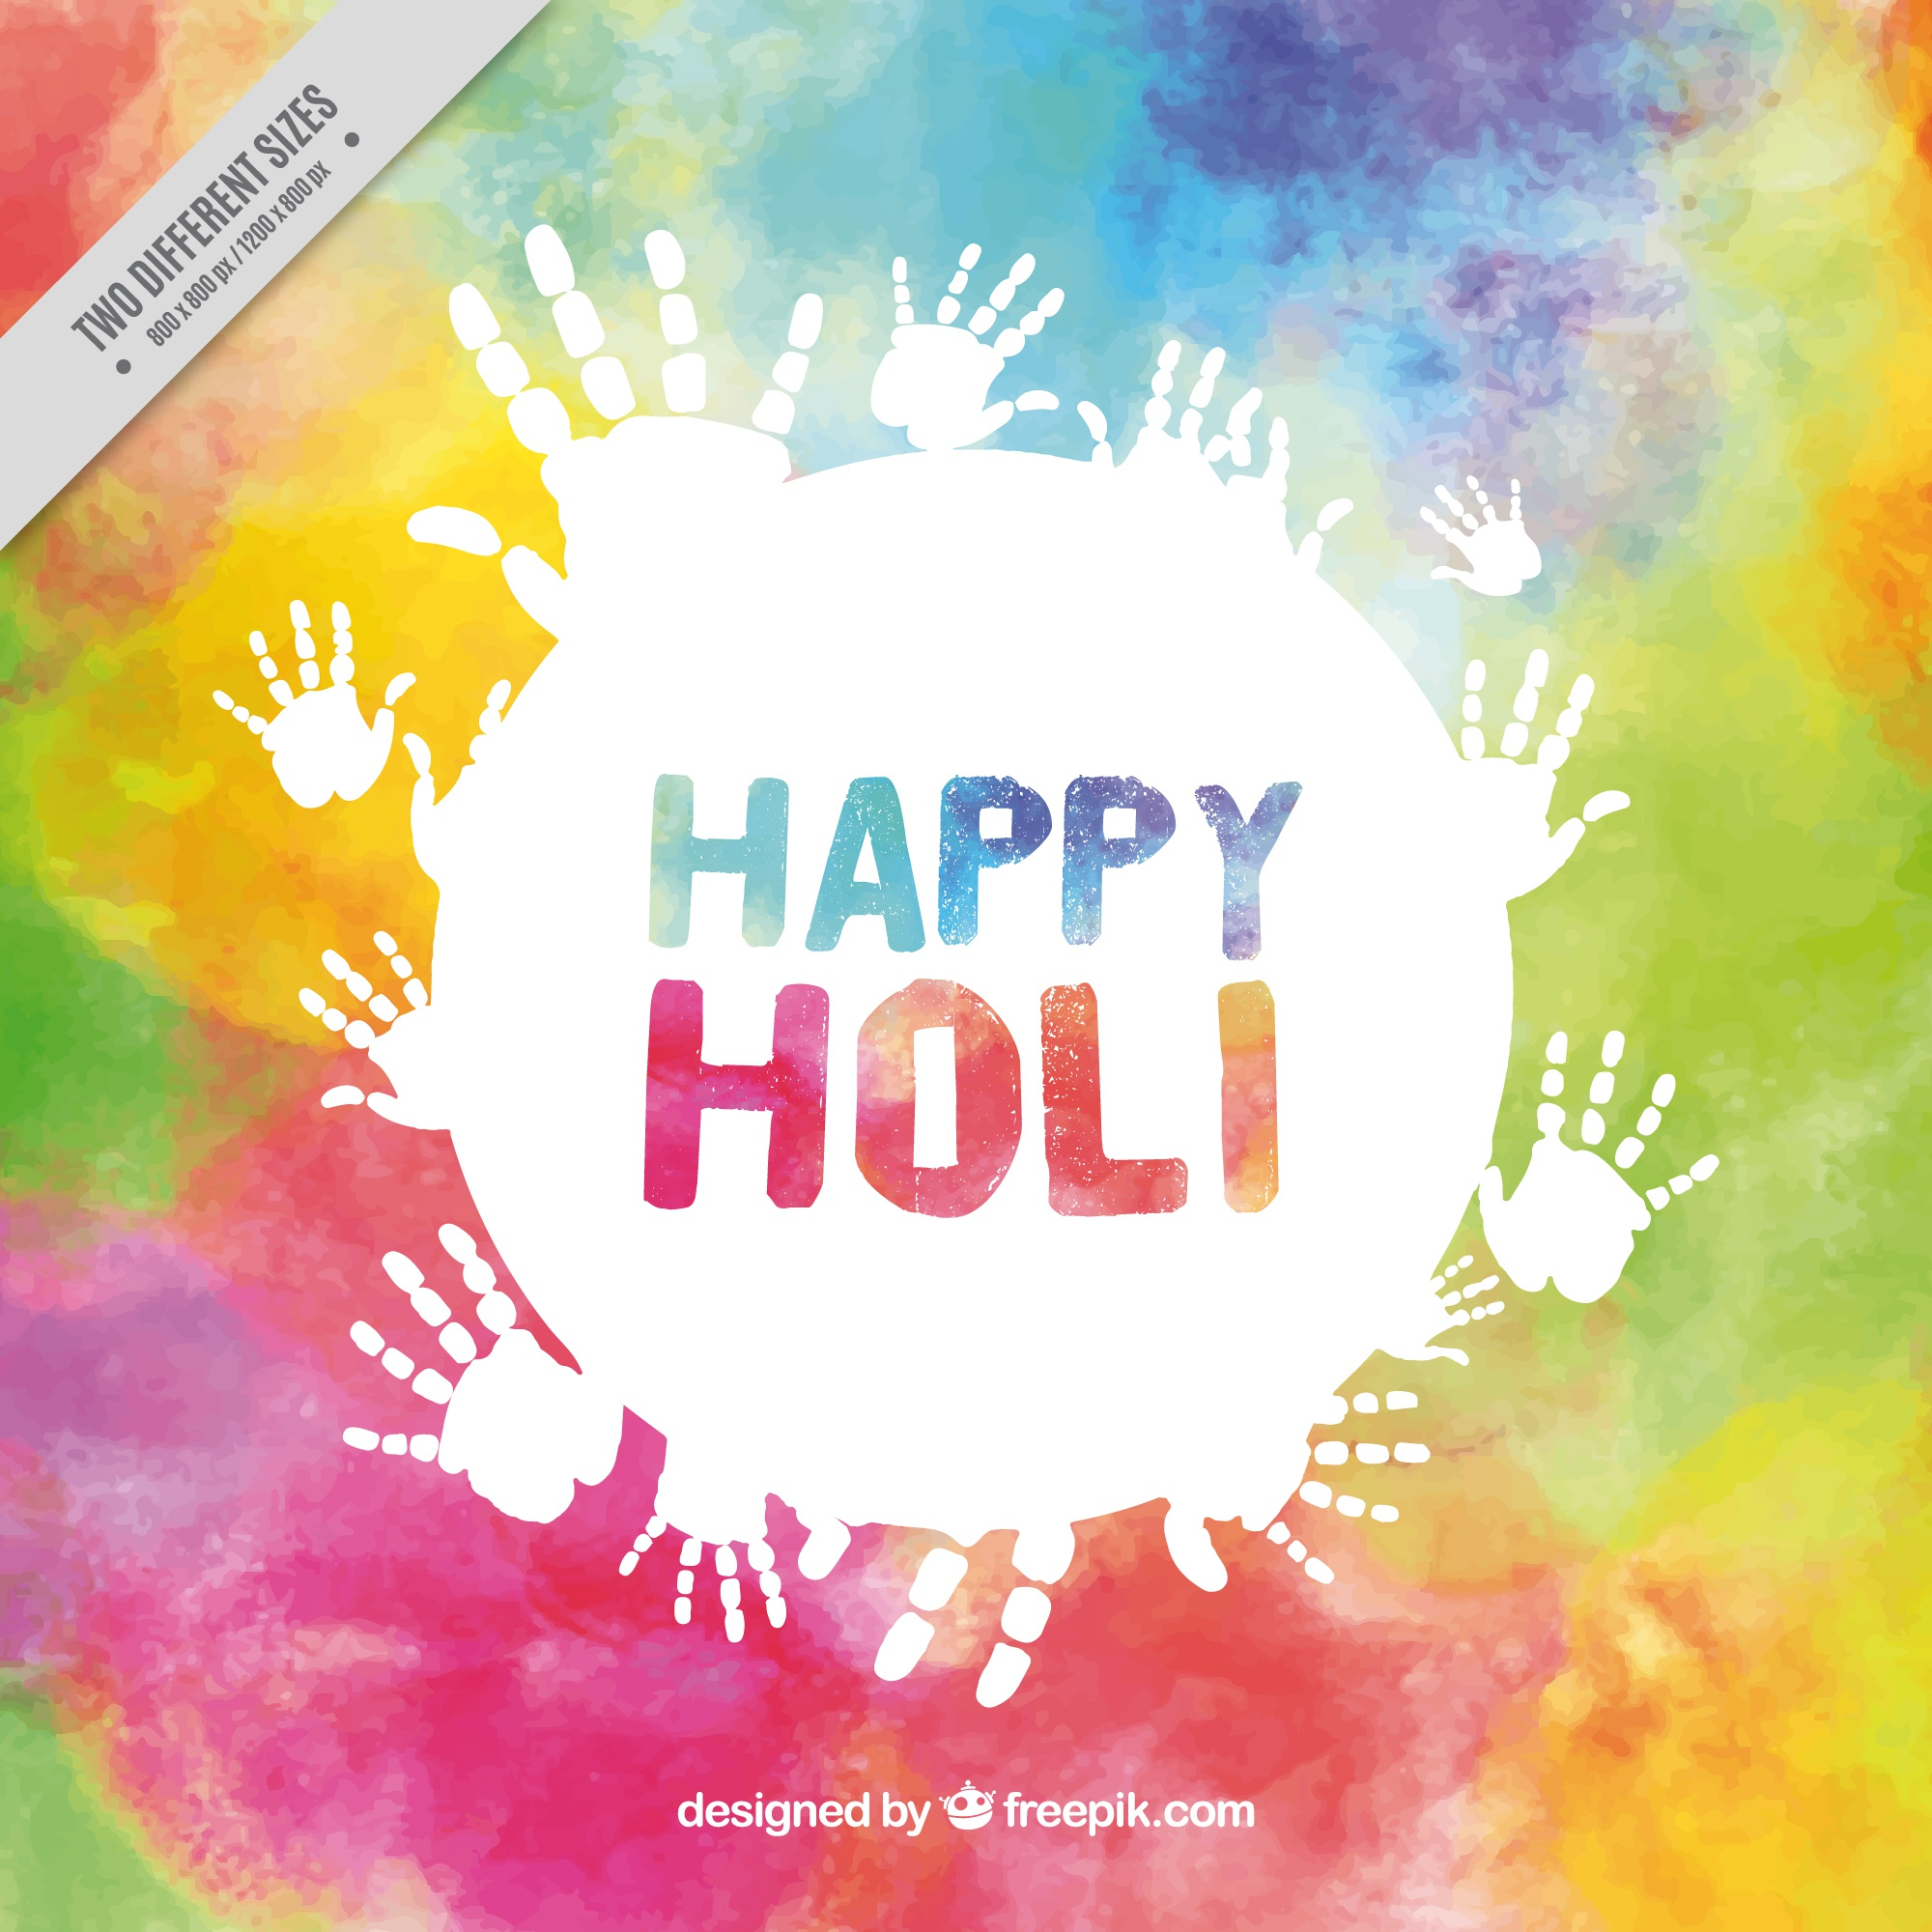 Colorful holi background with white handprints